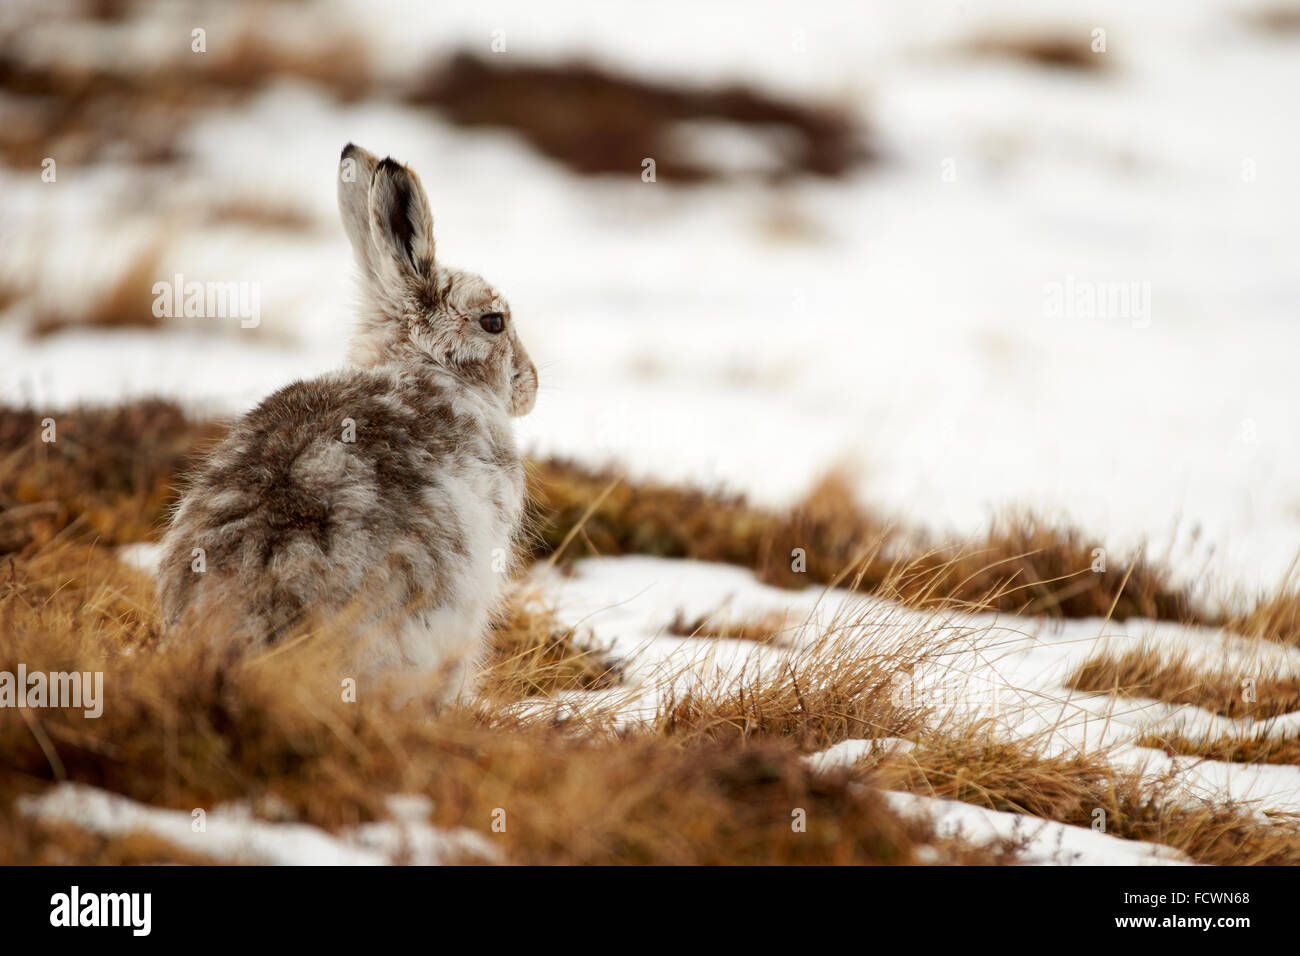 Mountain Hare on a snowy mountain (Lepus timidus) Cairngorm National Park, Scotland, United Kingdom - Stock Image